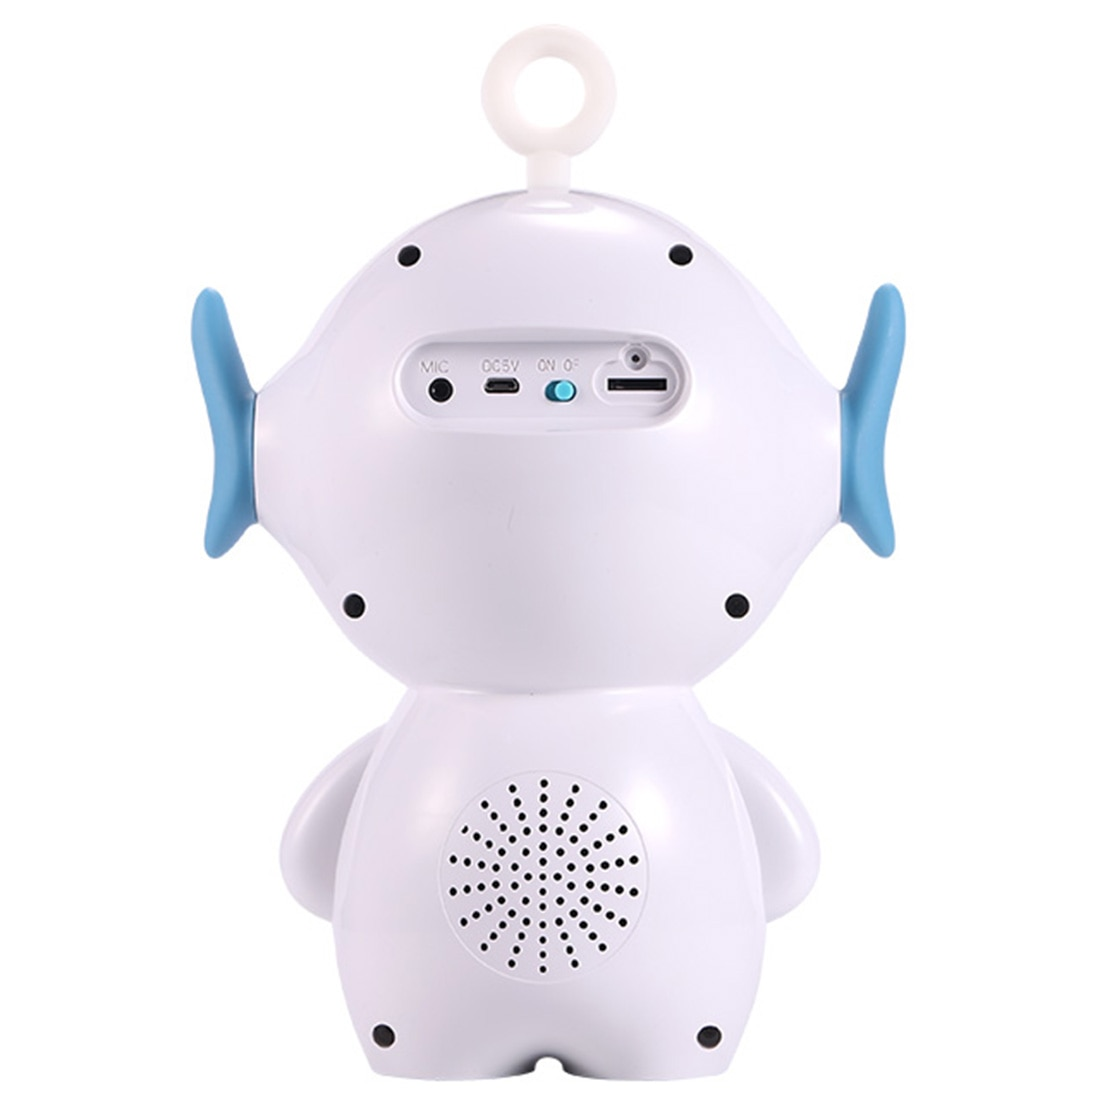 Children Intelligent Accompany Toy Smart RC Robot Interactive Voice Play Music APP Voice Chat Storytelling for Kid Birthday Gift enlarge